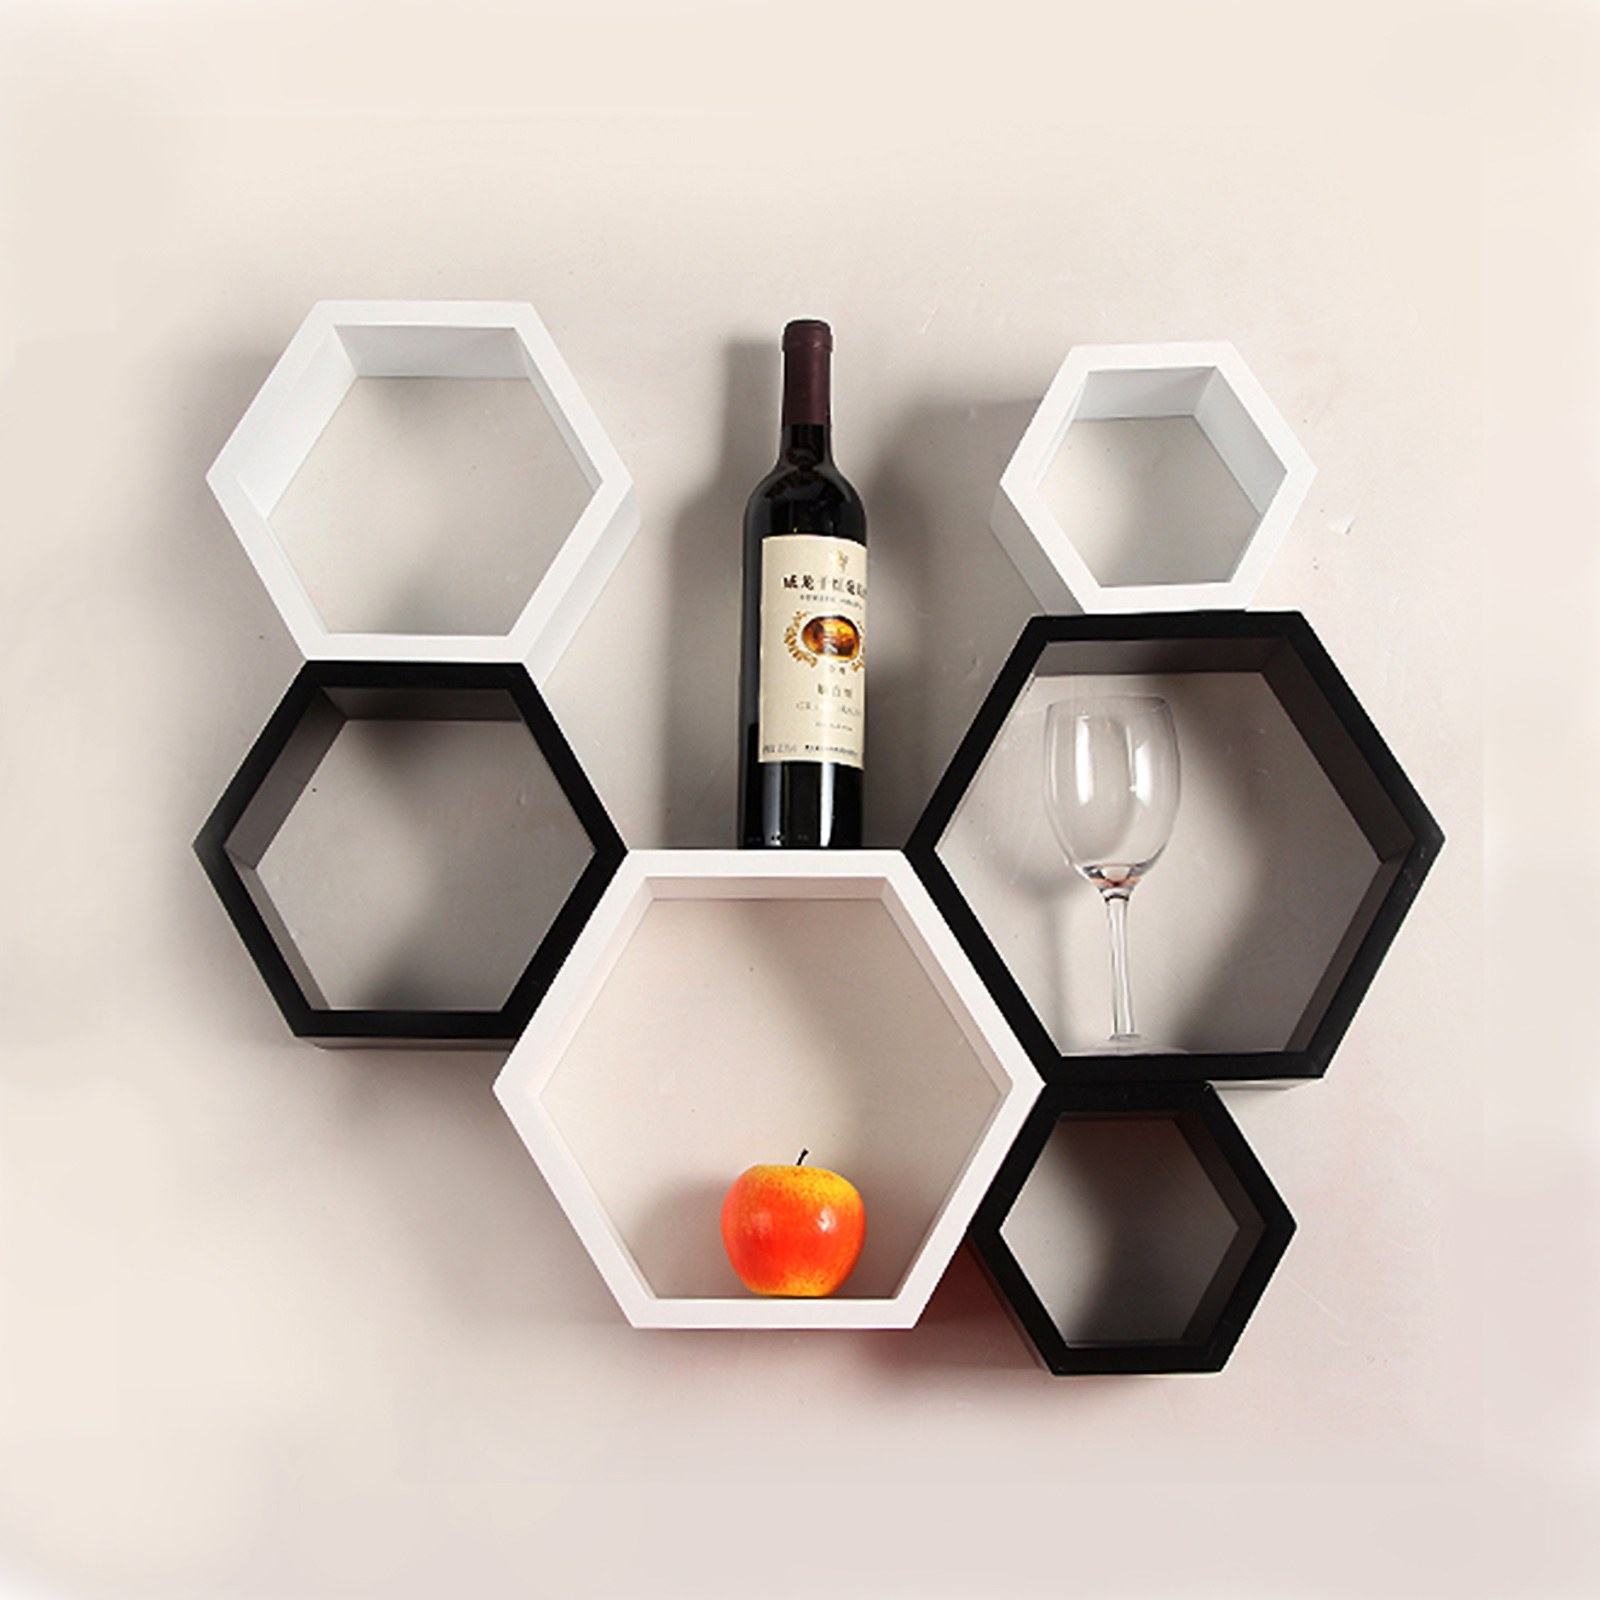 Very Impressive portraiture of wall mount shelves hexagon shape set of 6 wall shelves black white  with #C68E05 color and 1600x1600 pixels